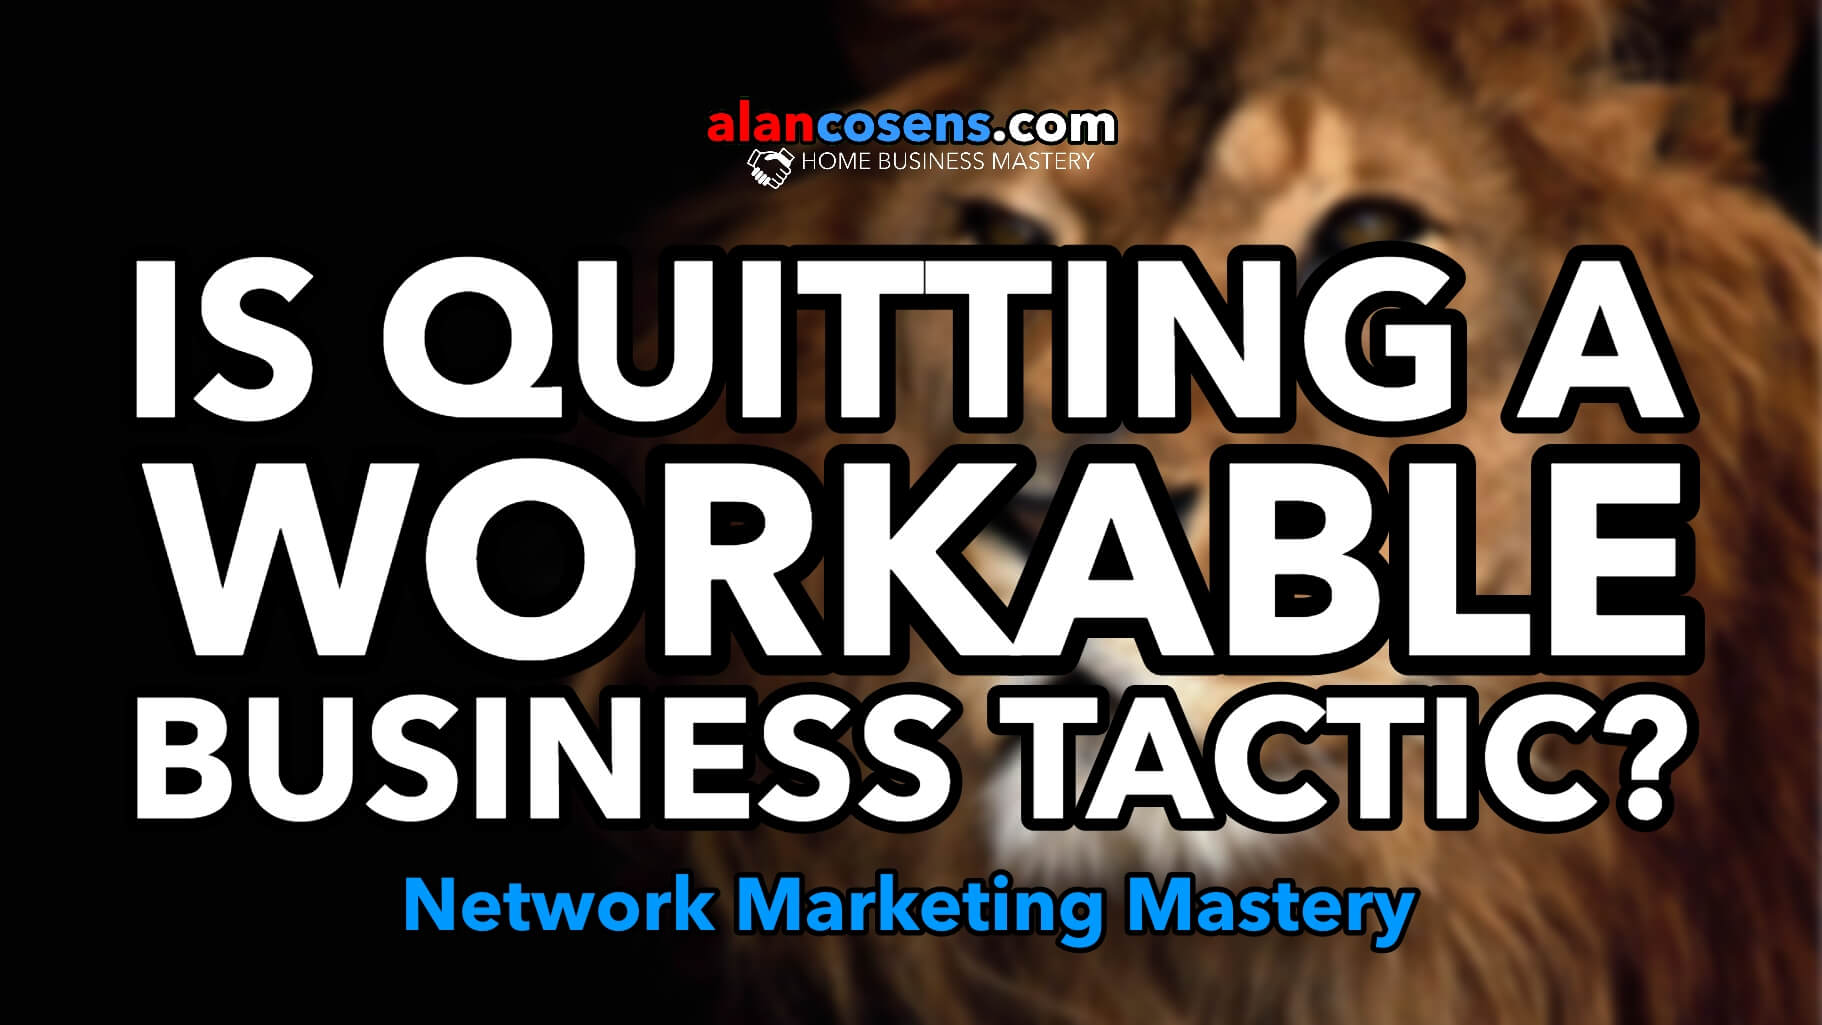 Is Quitting A Workable Business Tactic?